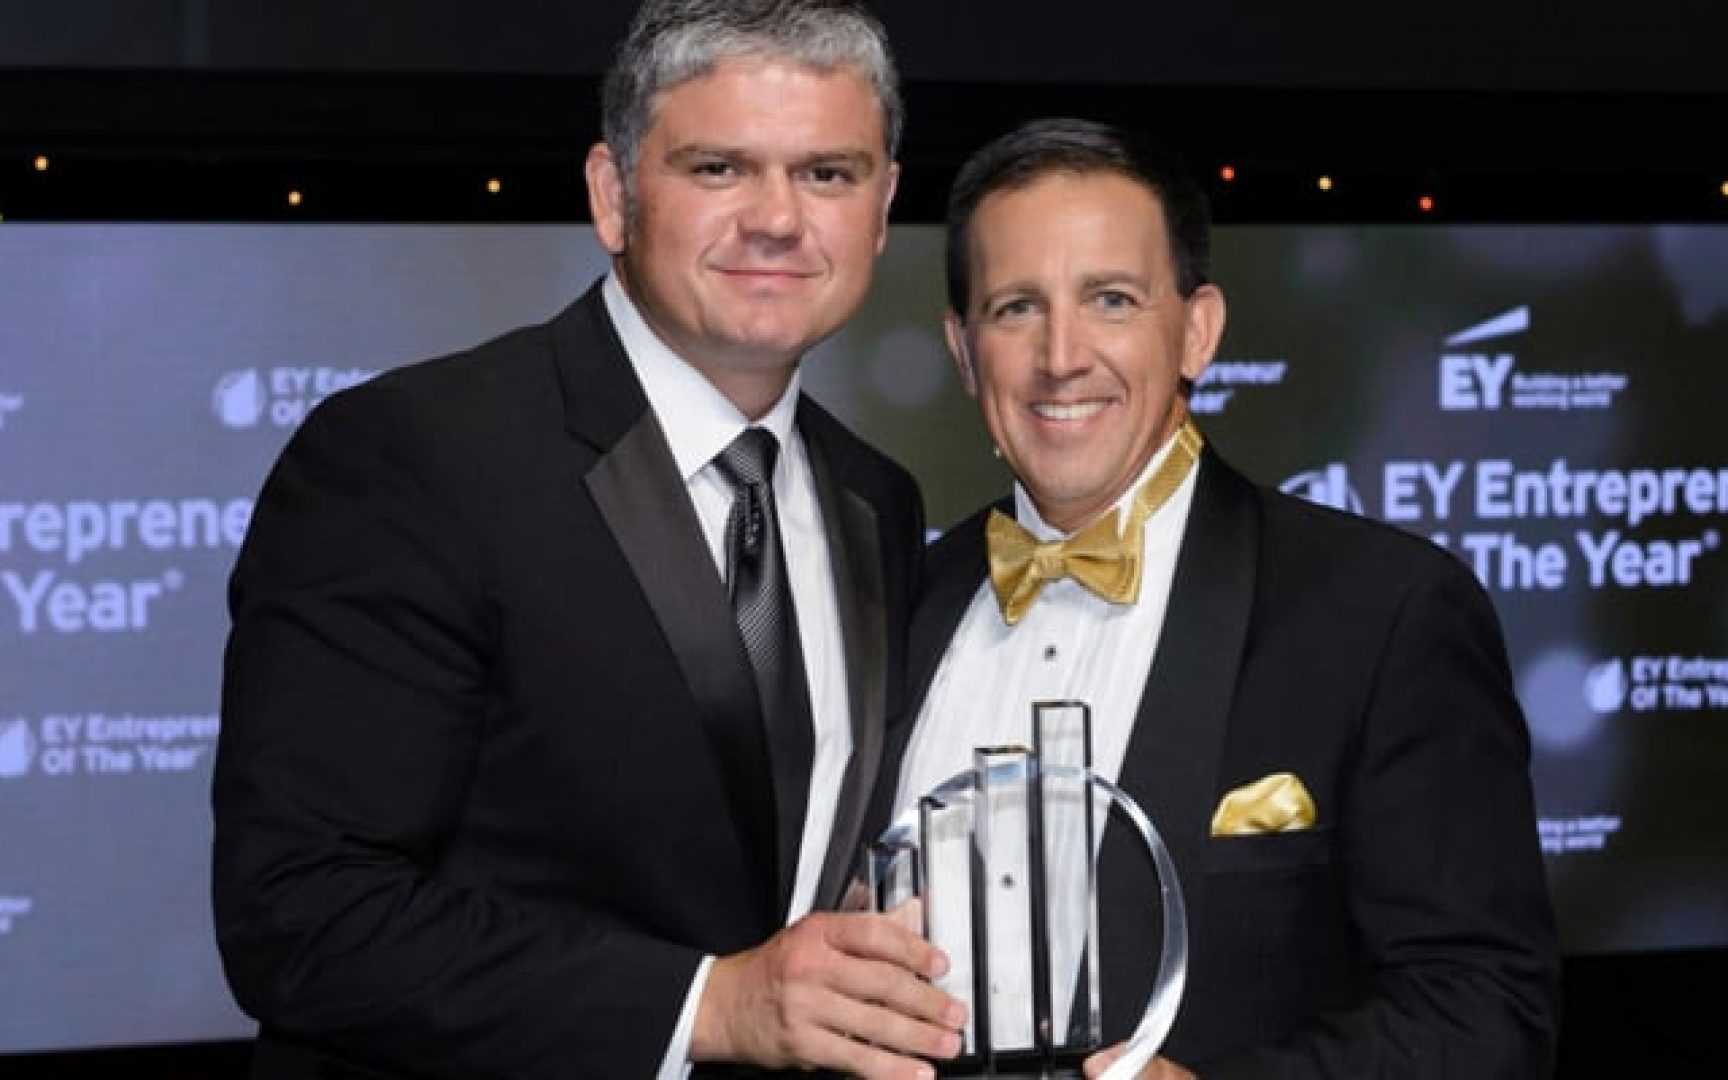 Nick Reader standing with another man accepting an award